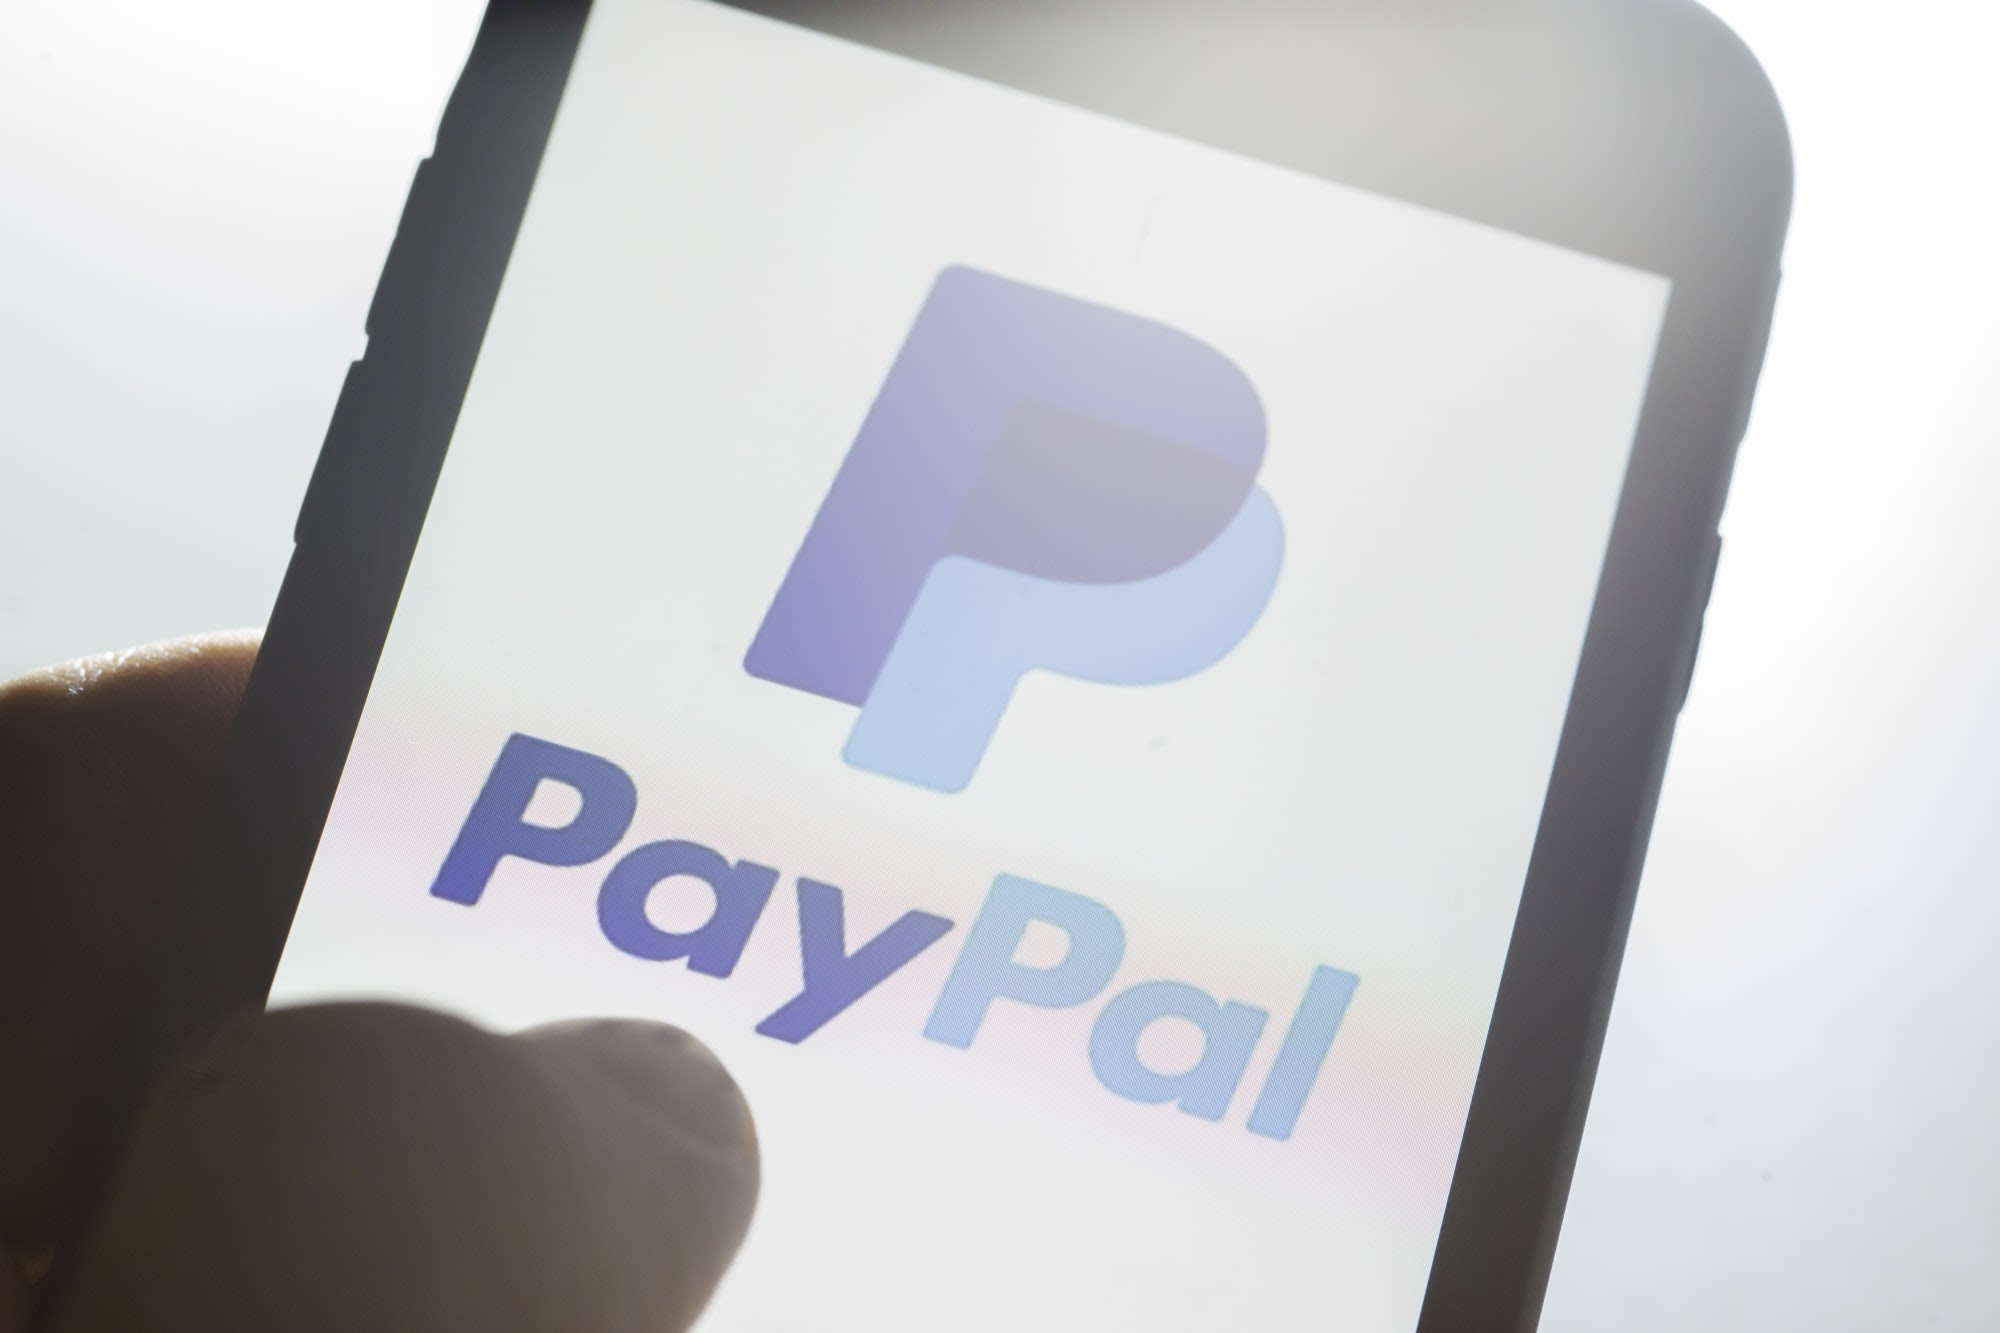 PayPal cash withdraws are coming to Walmart stores